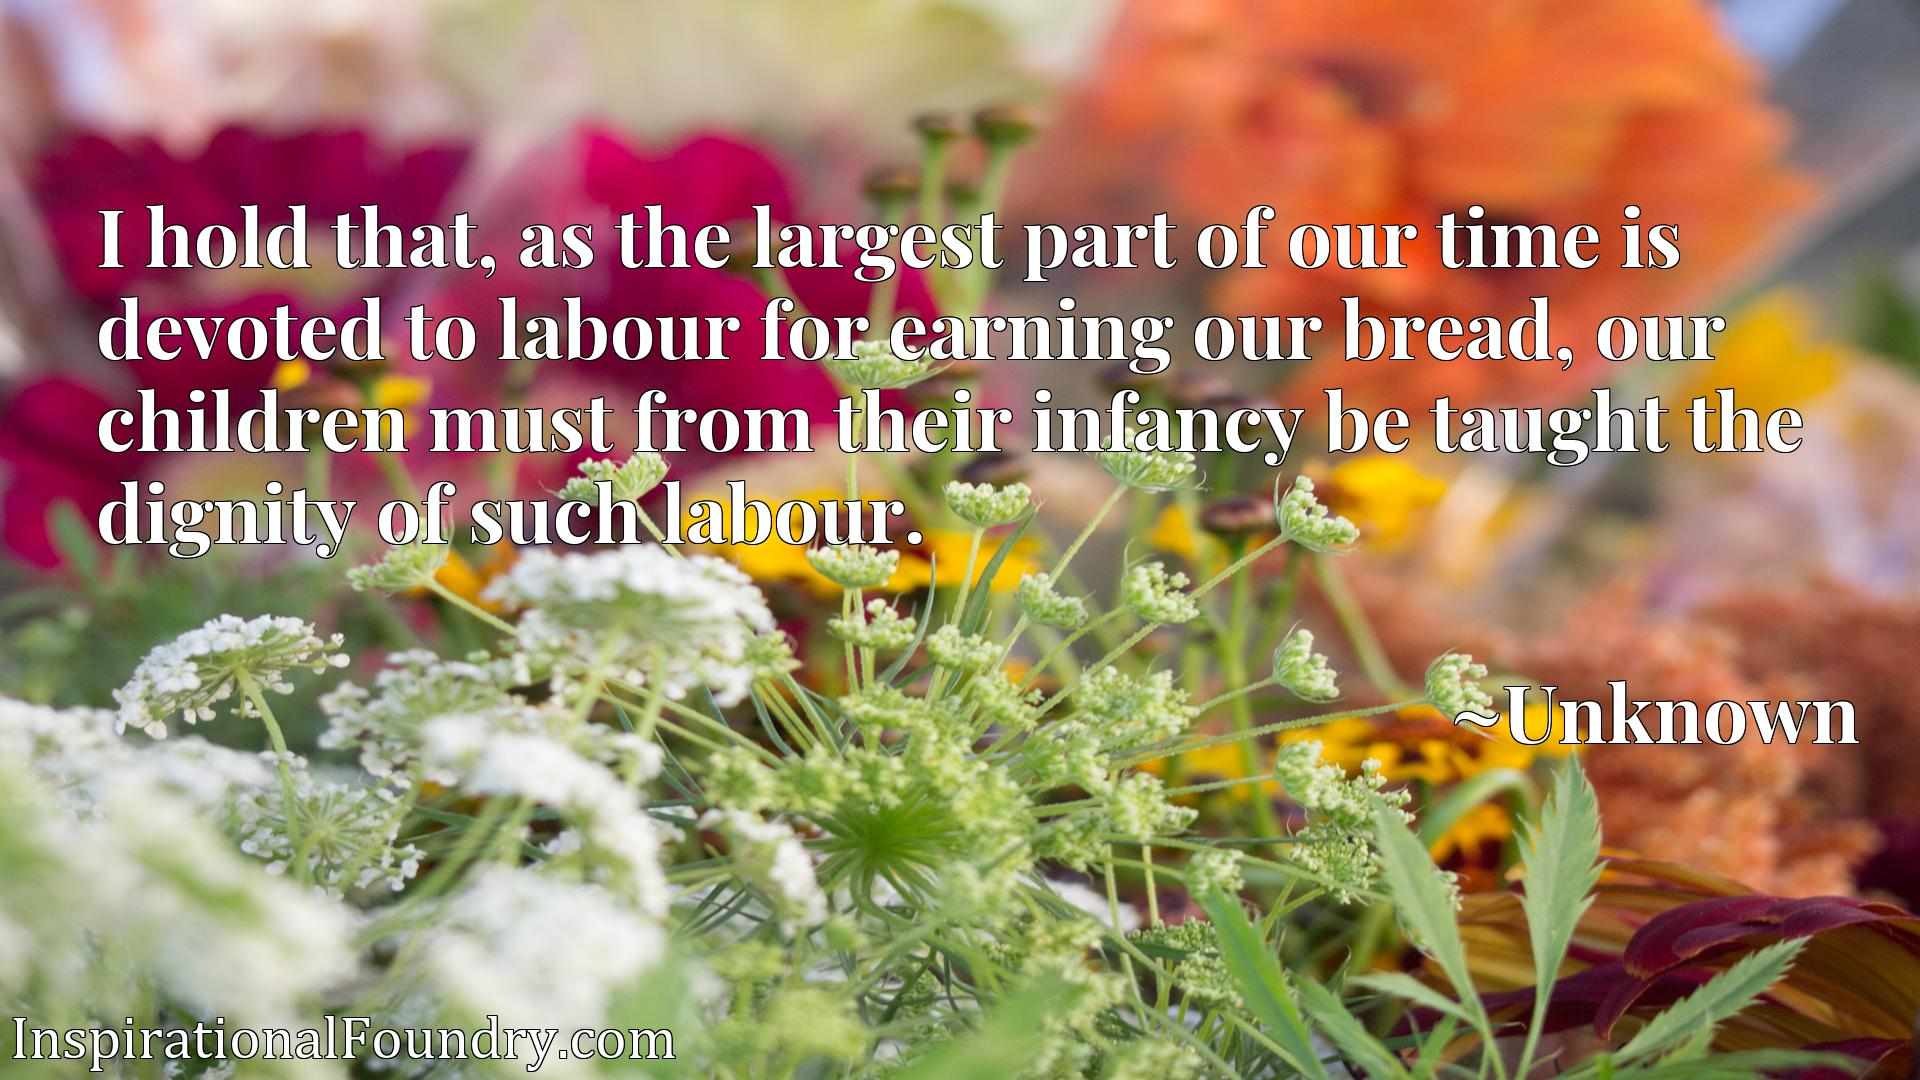 I hold that, as the largest part of our time is devoted to labour for earning our bread, our children must from their infancy be taught the dignity of such labour.